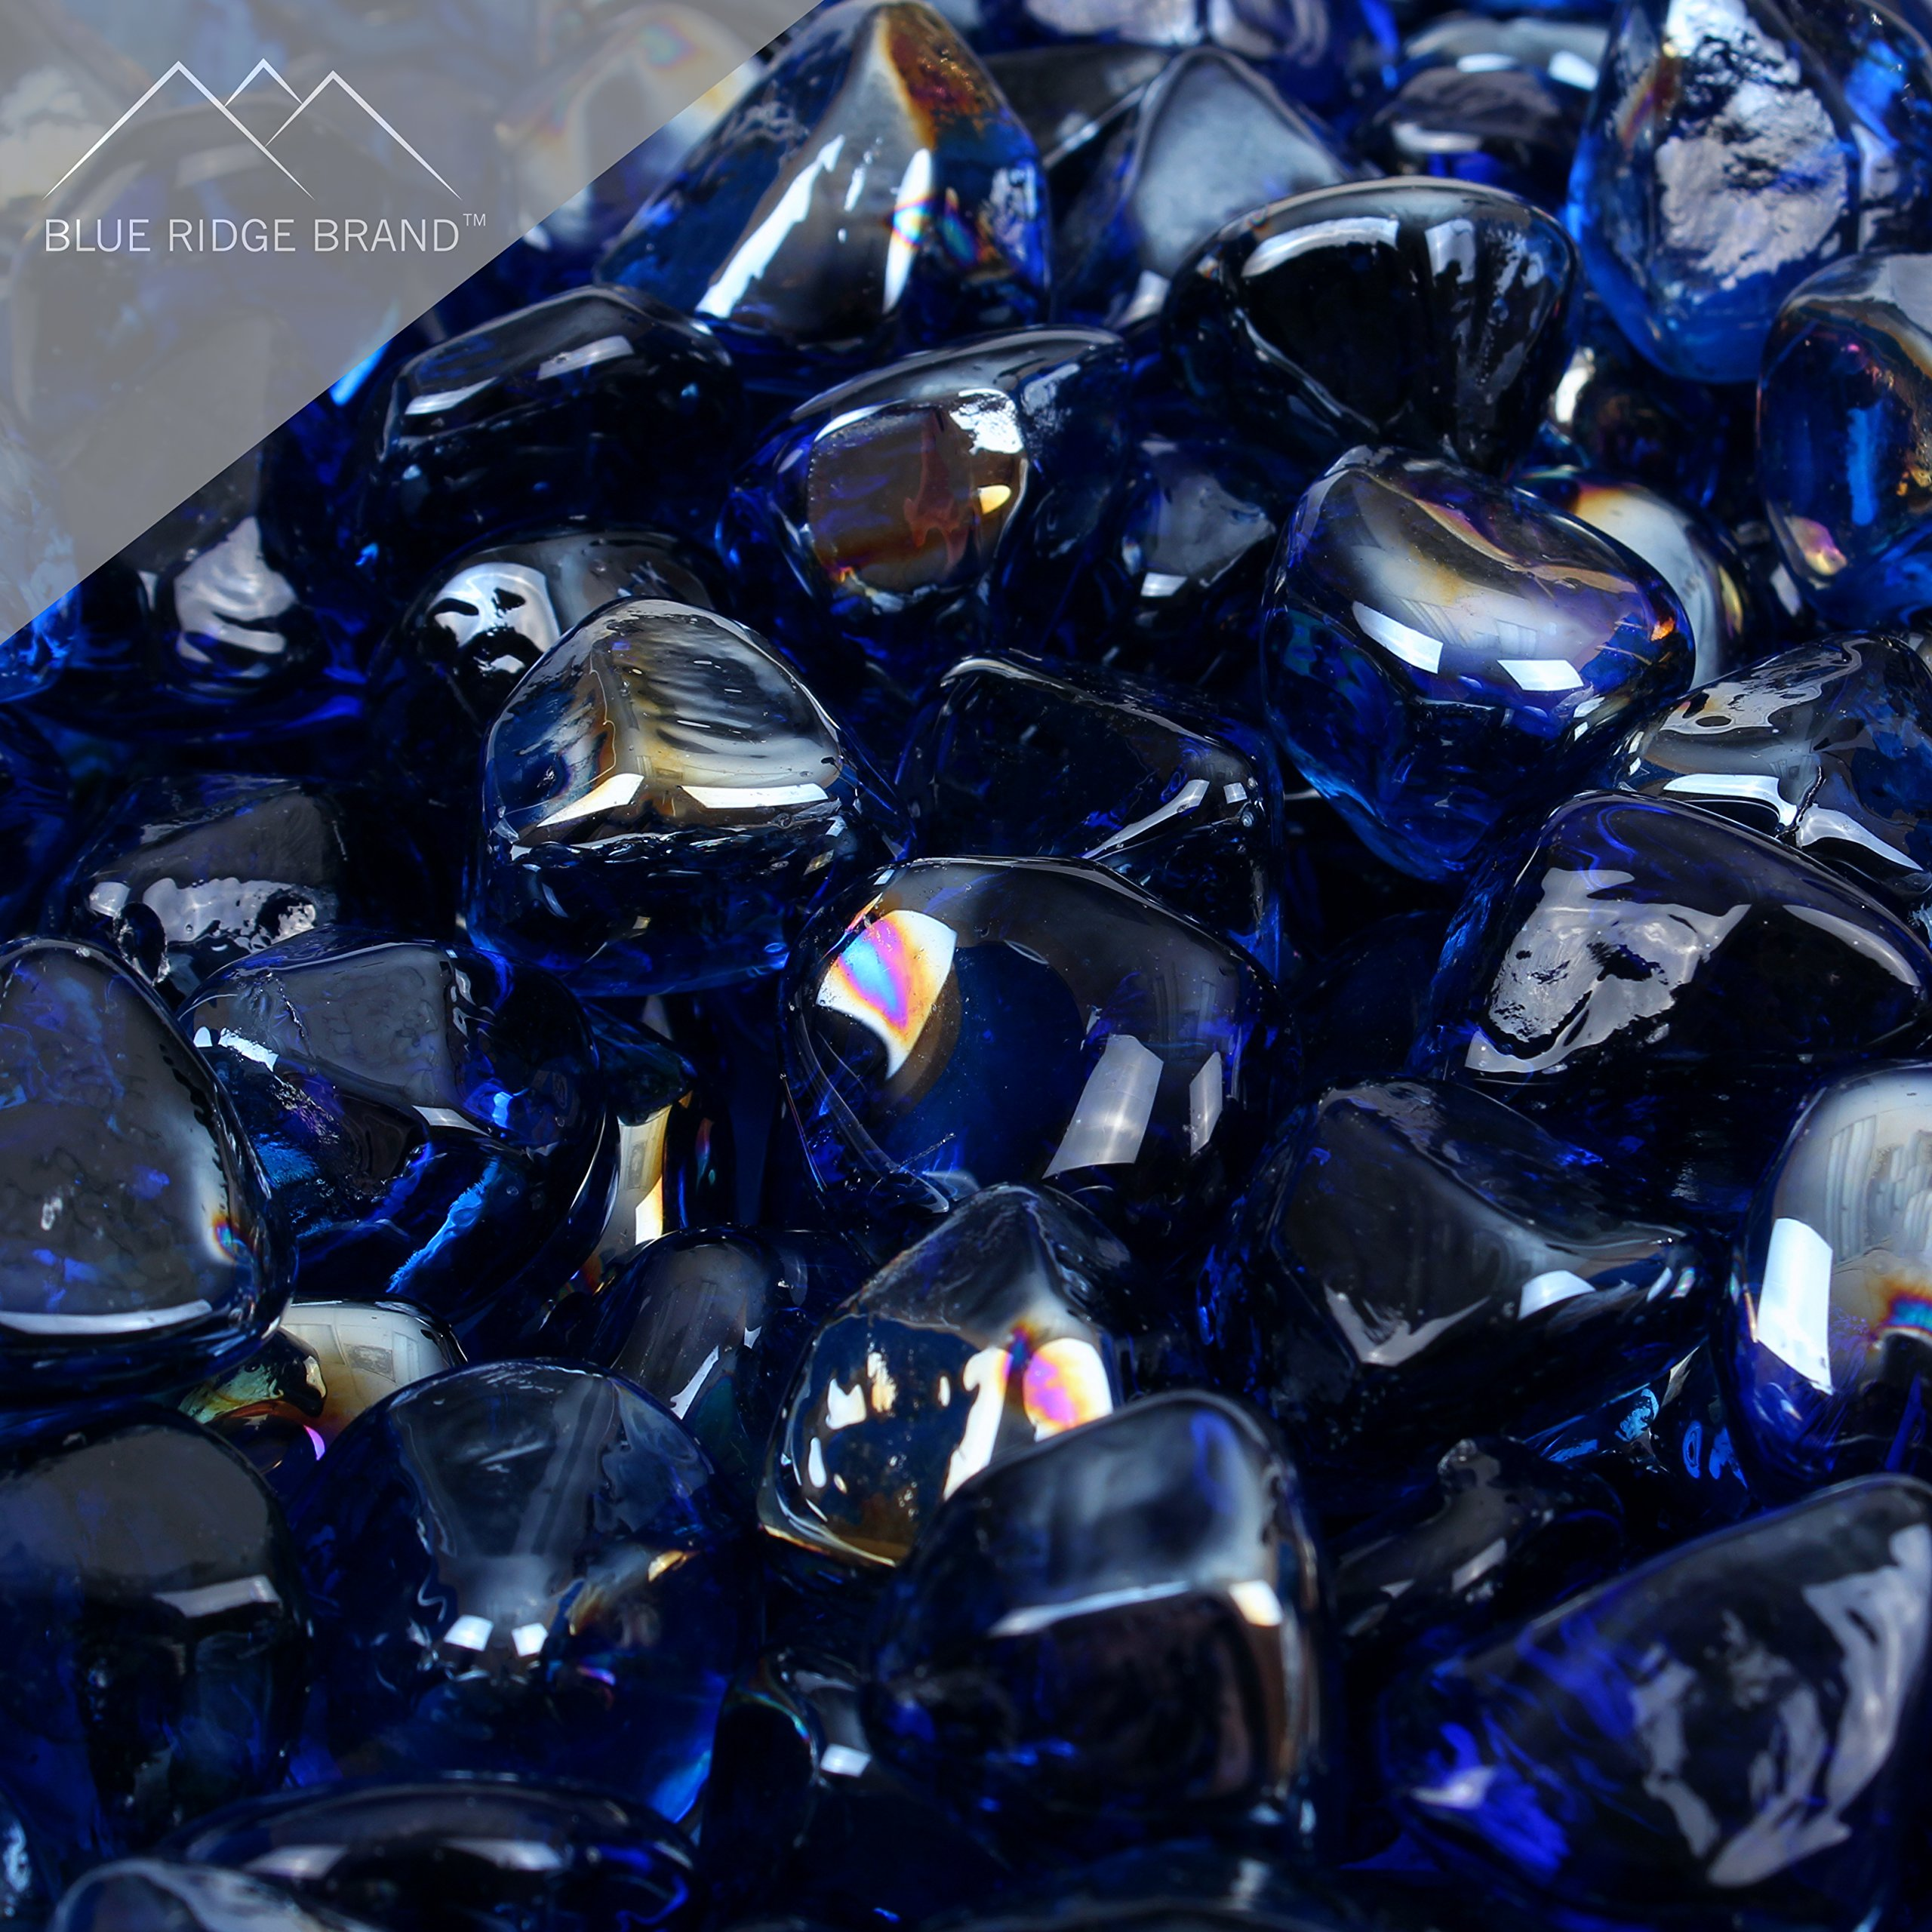 Blue Ridge Brand™ Dark Blue Reflective Fire Glass Diamonds - 50-Pound Professional Grade Fire Pit Glass - 1'' Reflective Fire Pit Glass Bulk Contractor Pack